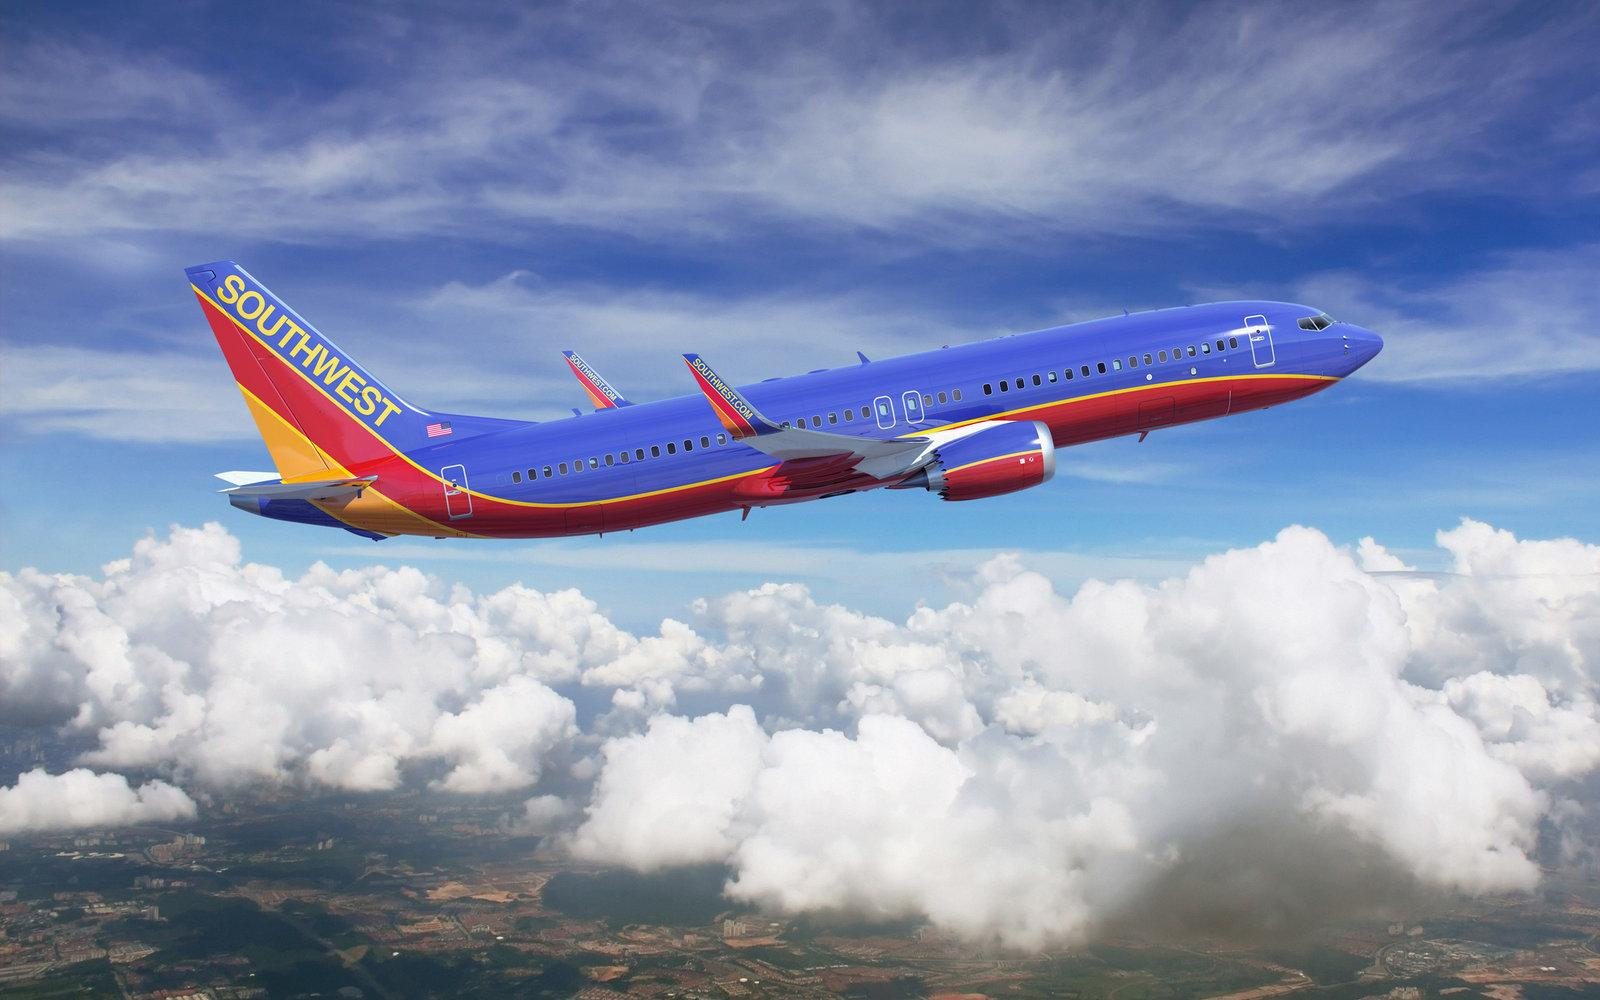 Time To Show LUV Some Love? - Consider Southwest Airlines Before It Takes Off